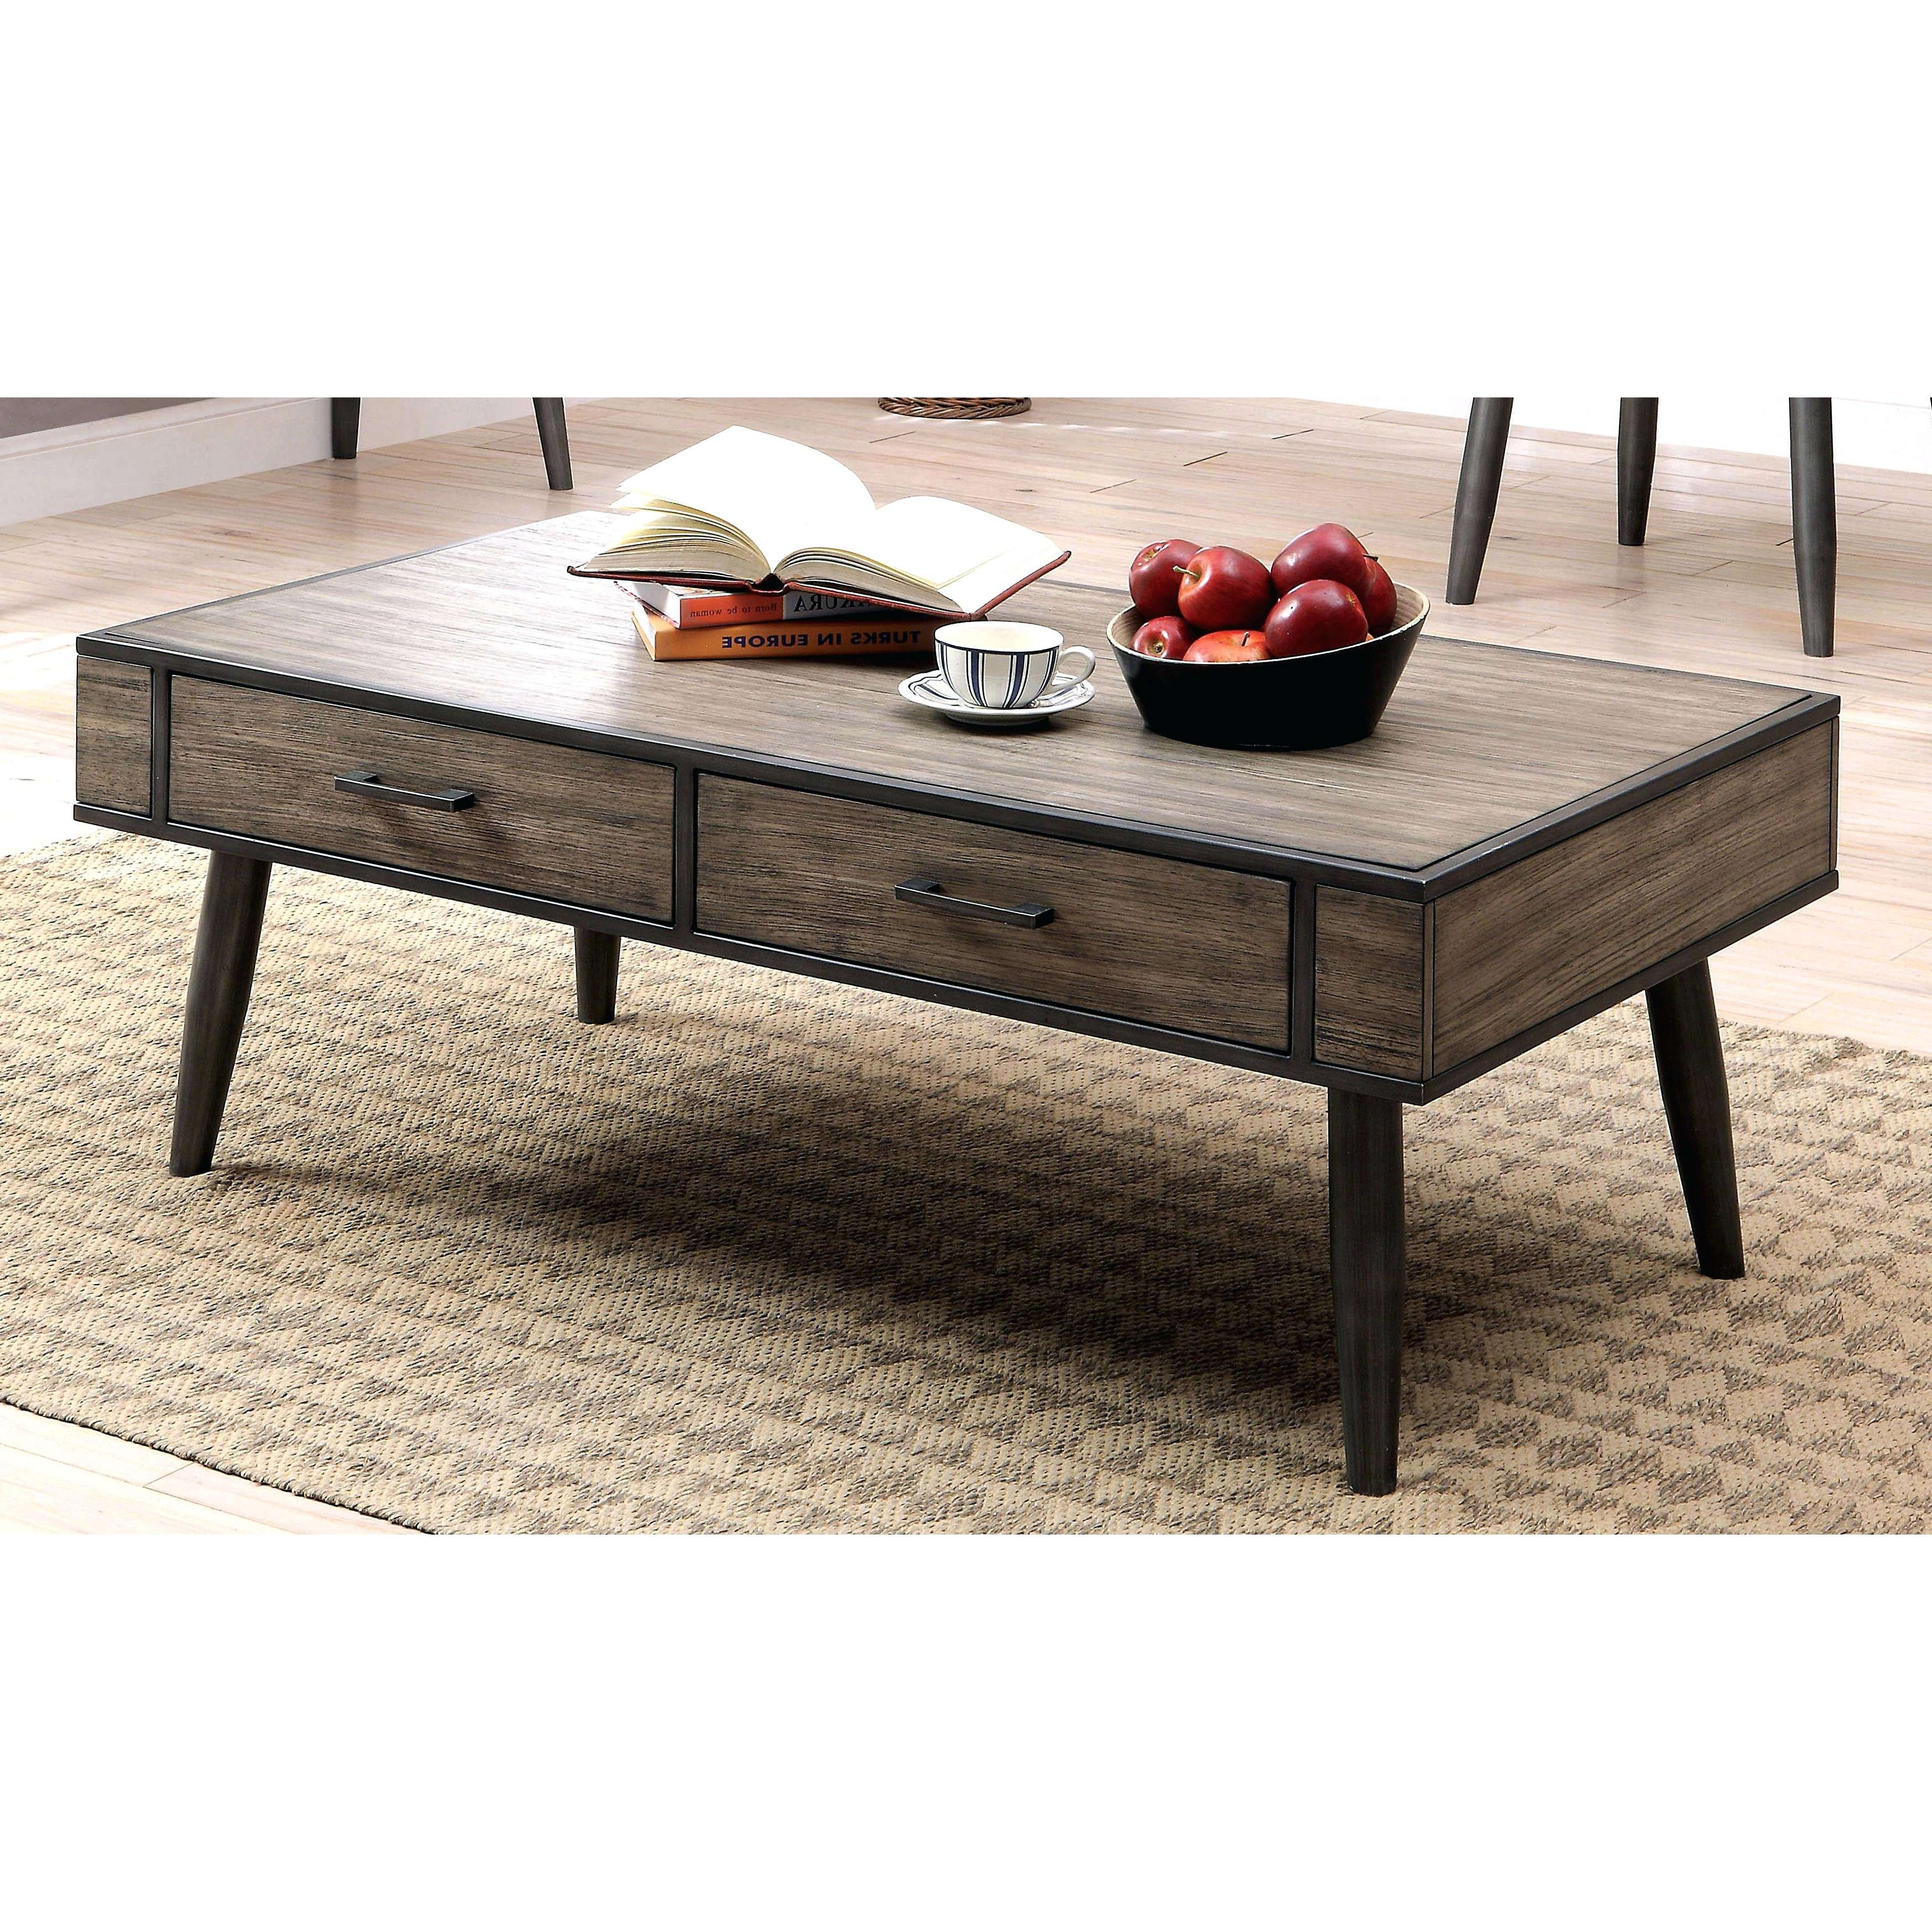 Coffee Tables : Furniture Of Mid Century Modern Industrial Style Pertaining To Recent Coffee Table Industrial Style (View 4 of 20)